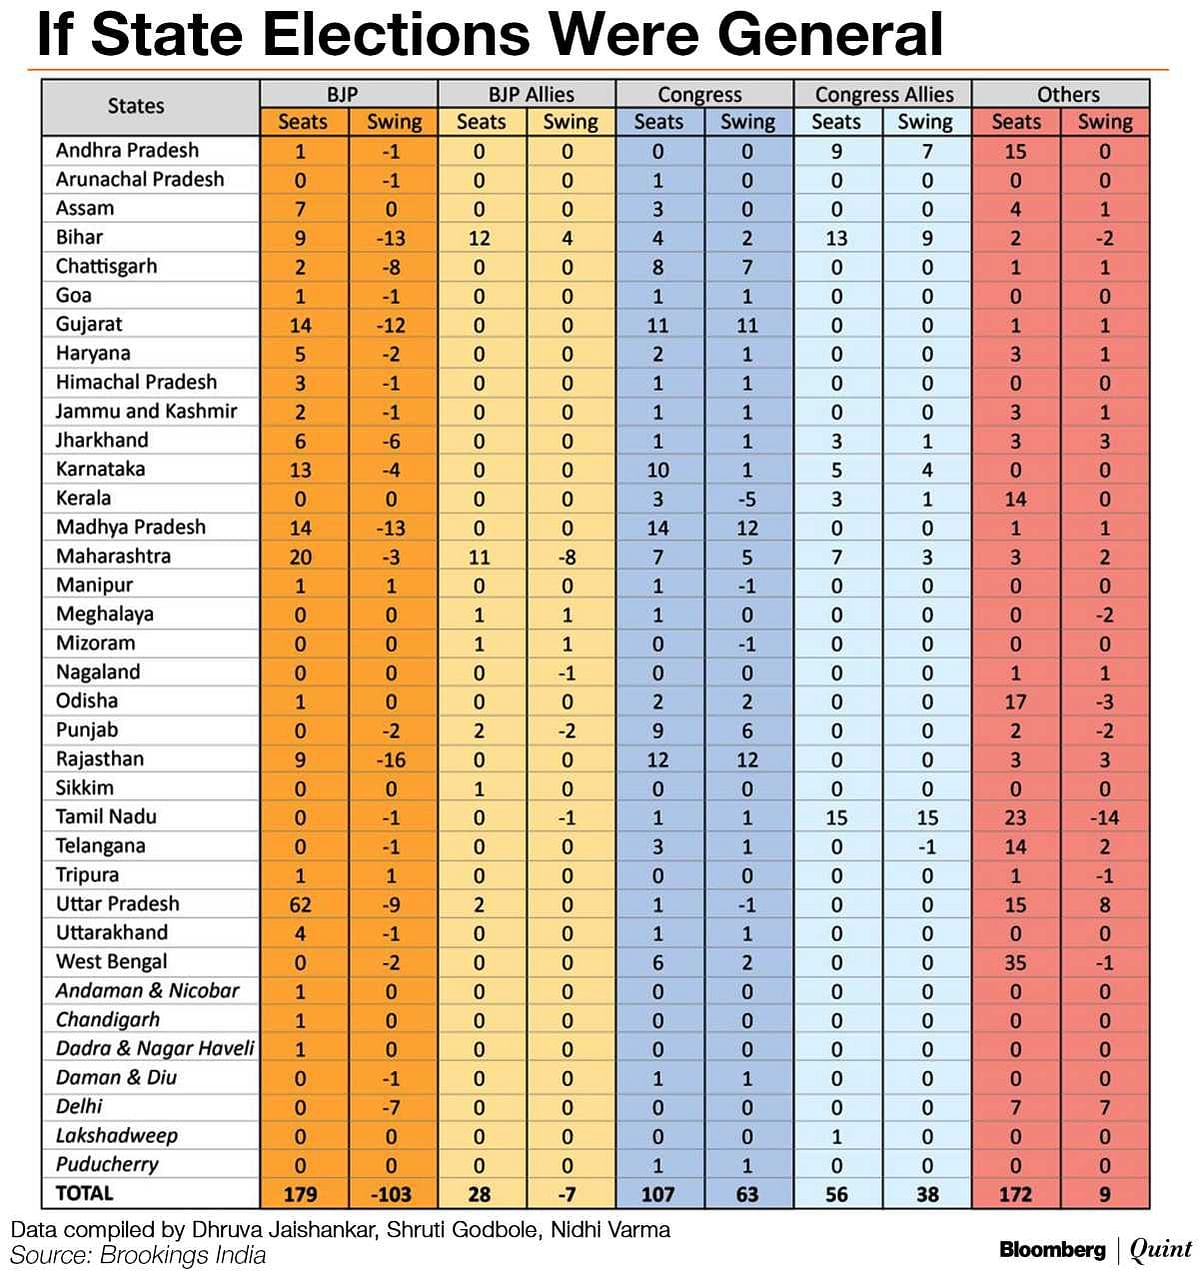 If India's 2014-2018 State Elections Were The General Elections...